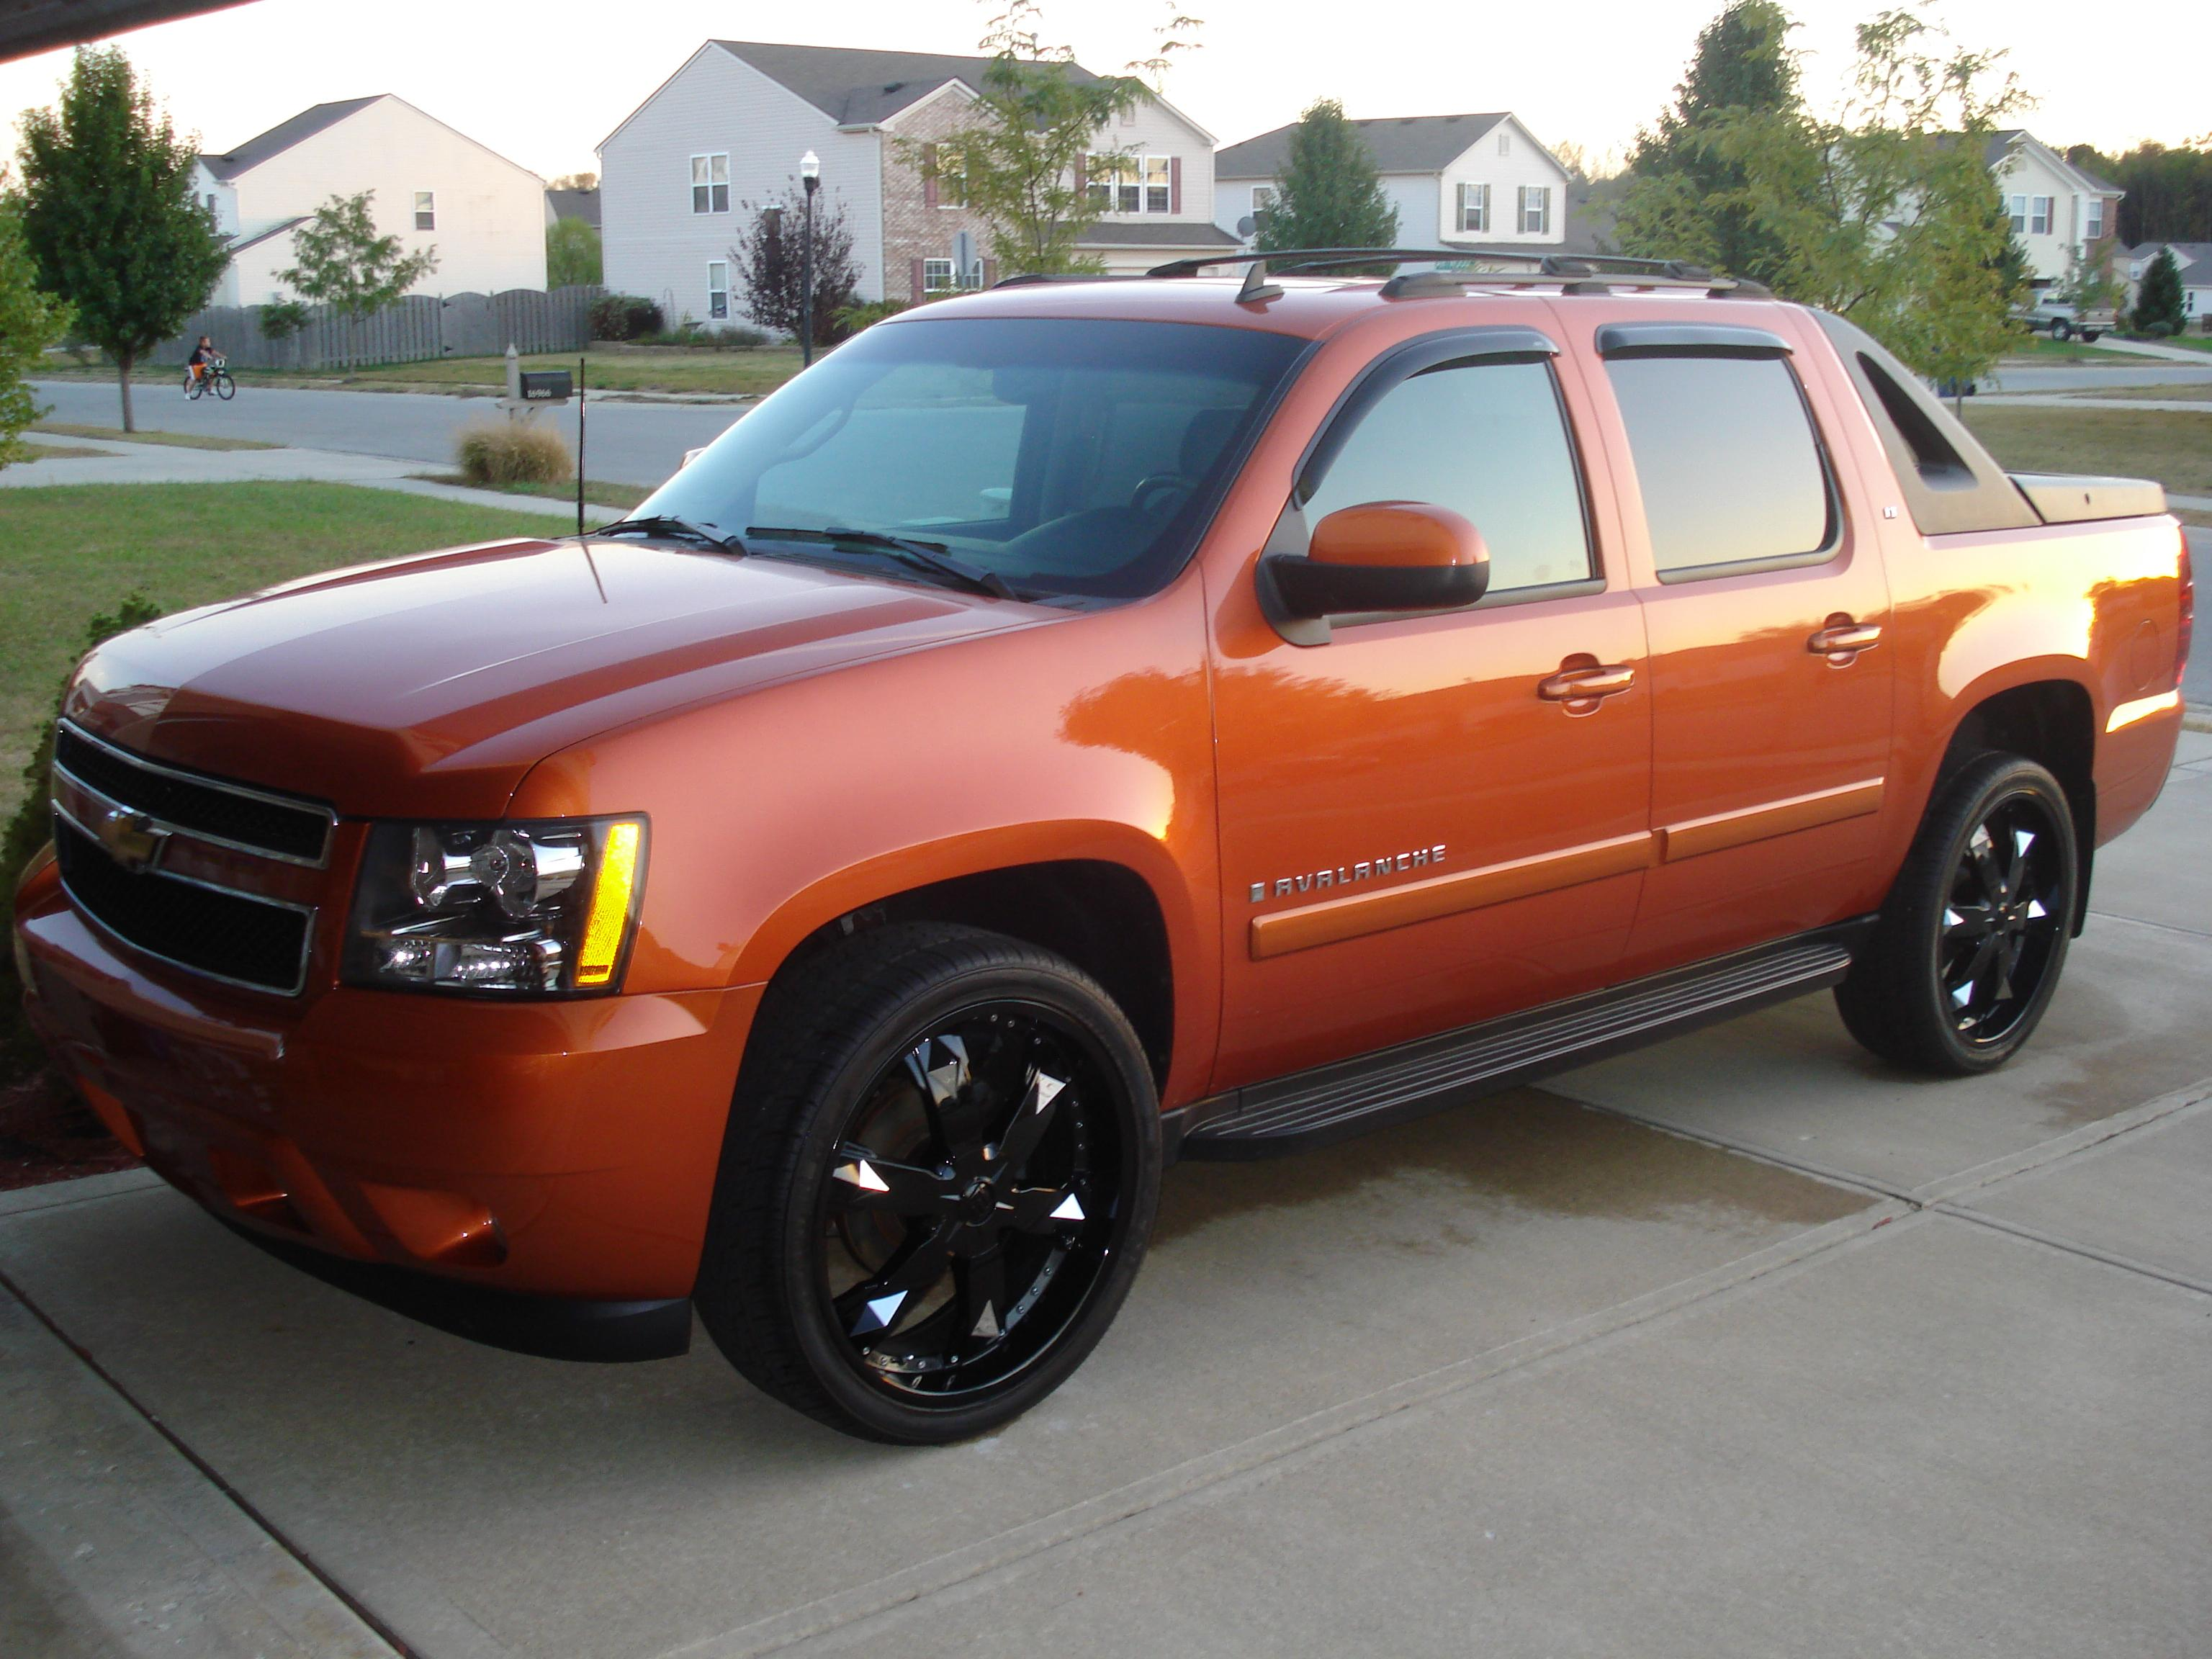 camden85 2007 chevrolet avalanche 1500 specs photos modification info at cardomain. Black Bedroom Furniture Sets. Home Design Ideas